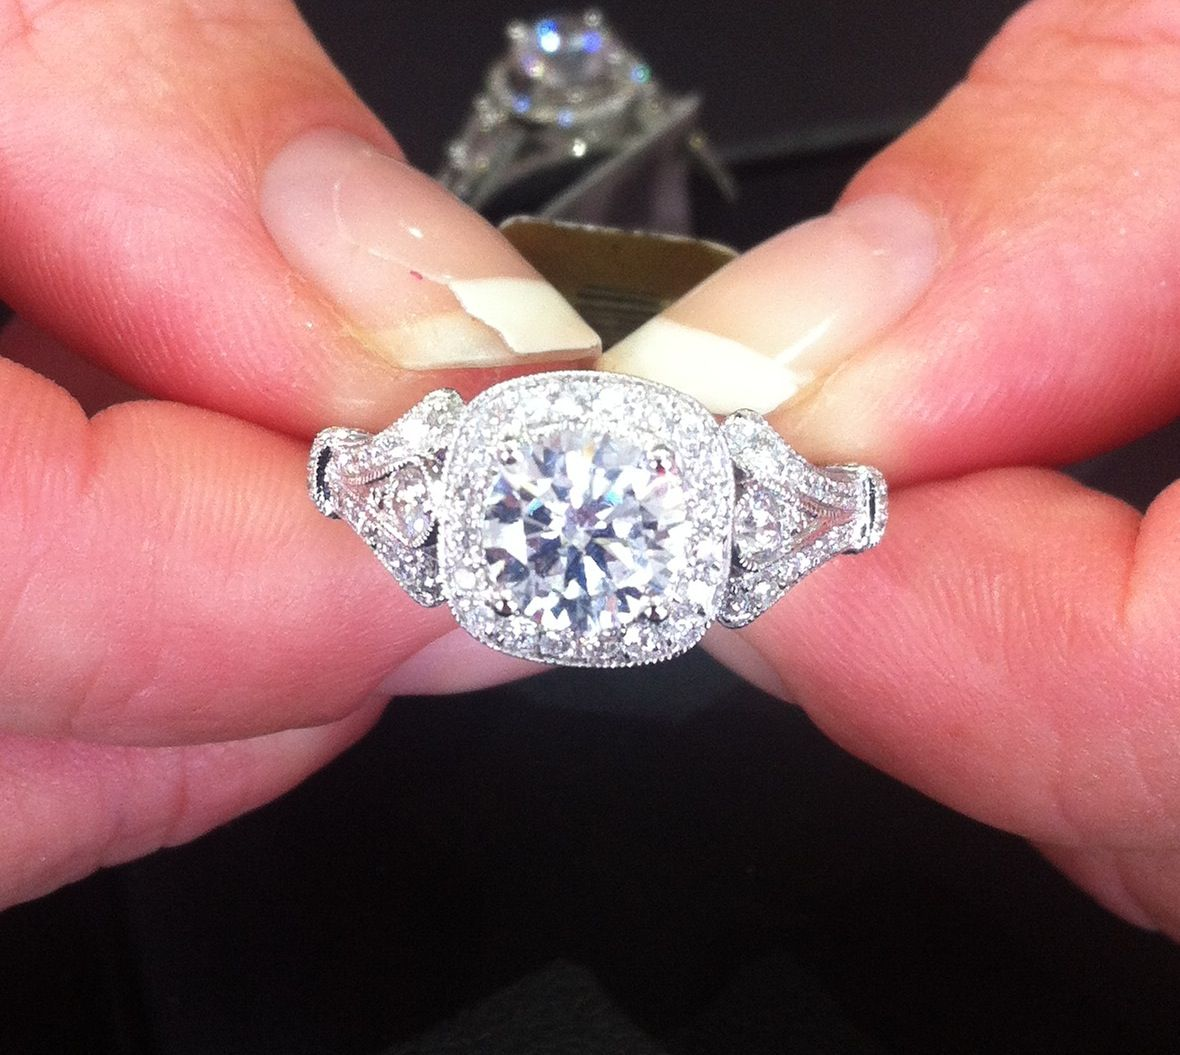 Beautiful vintage diamond ring. Love, minus the chipping polish ...